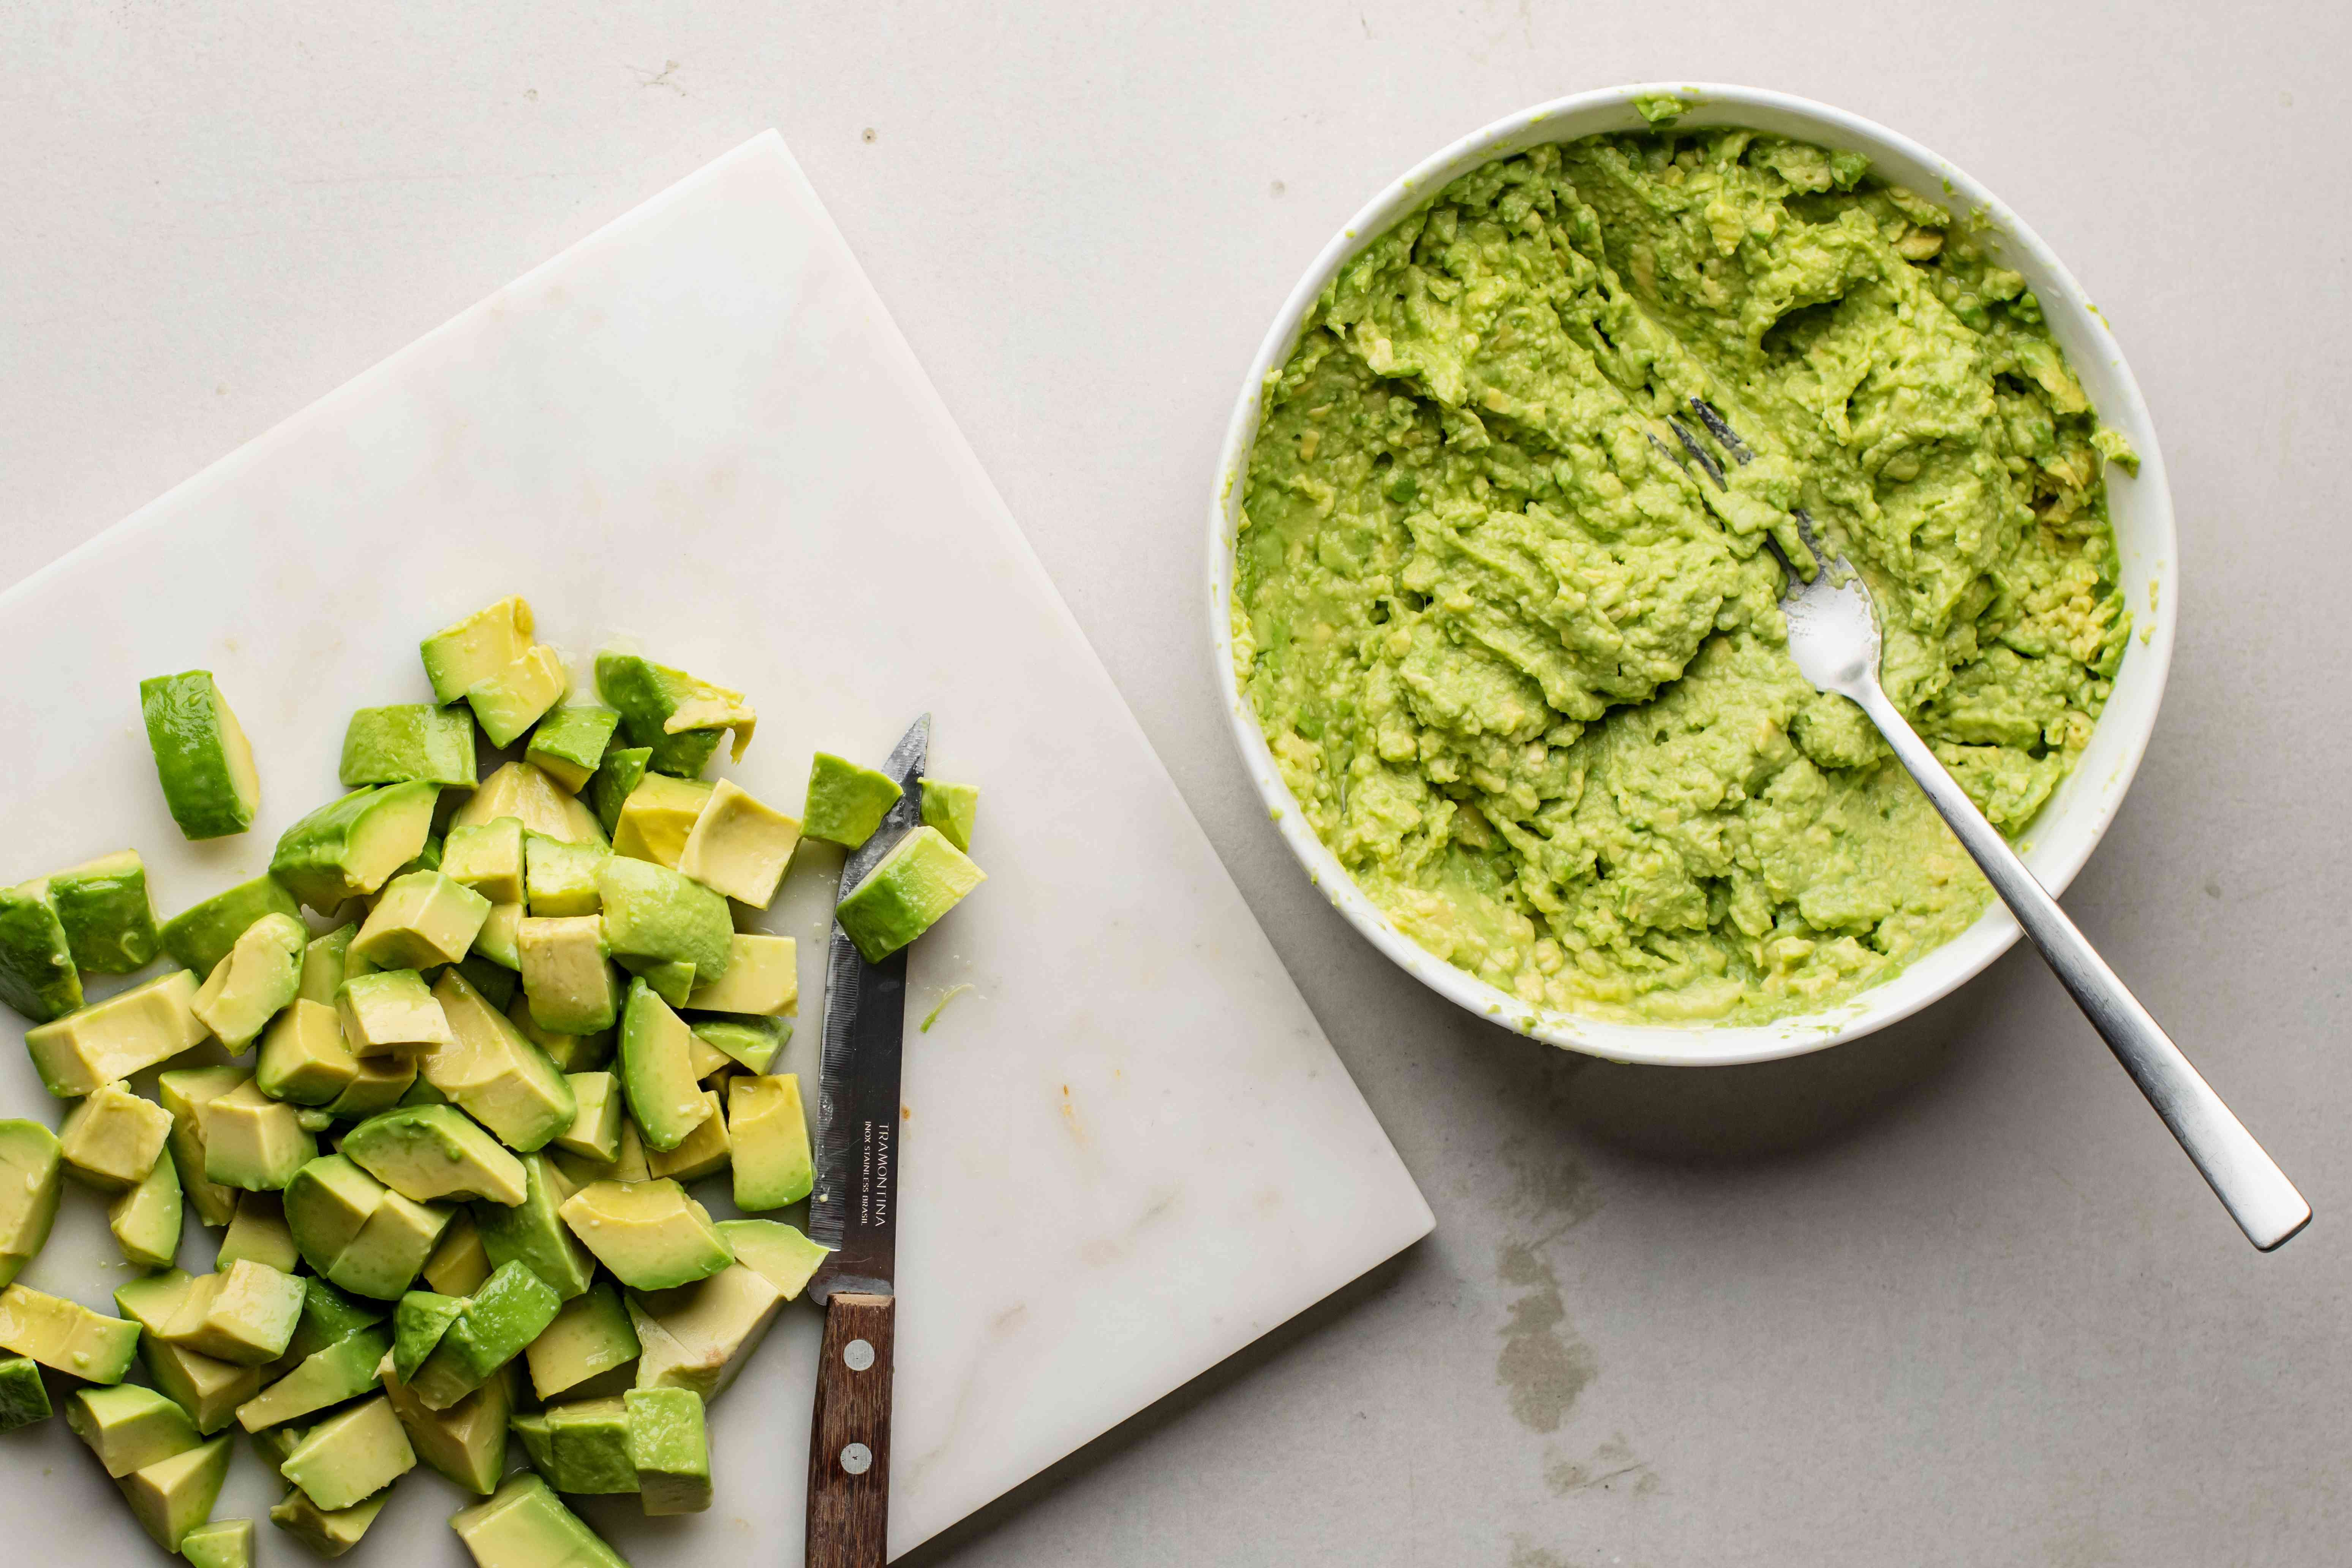 Mashed and dice avocados